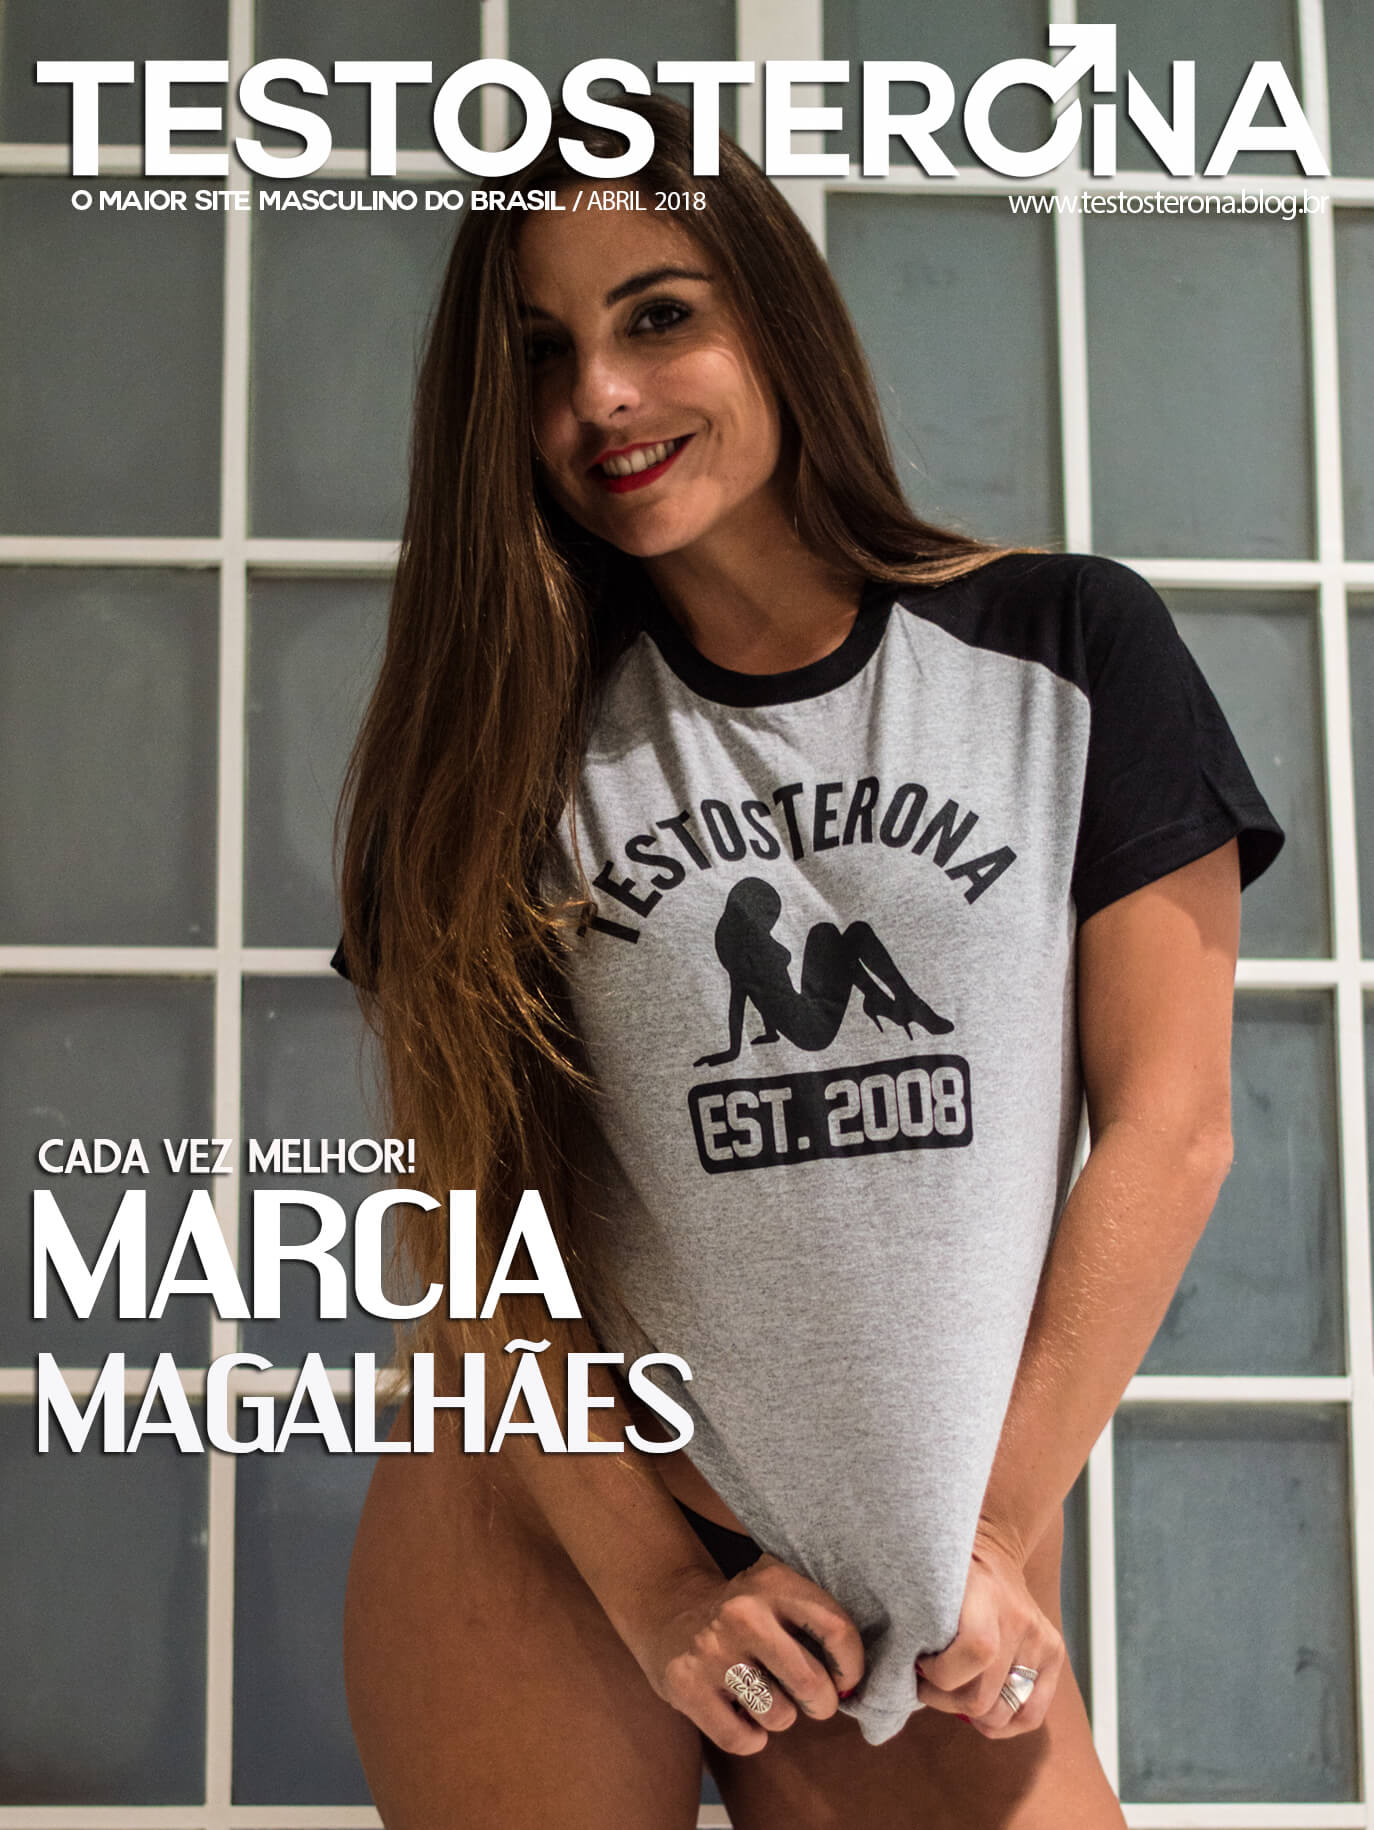 Márcia Magalhães Testosterona Girls